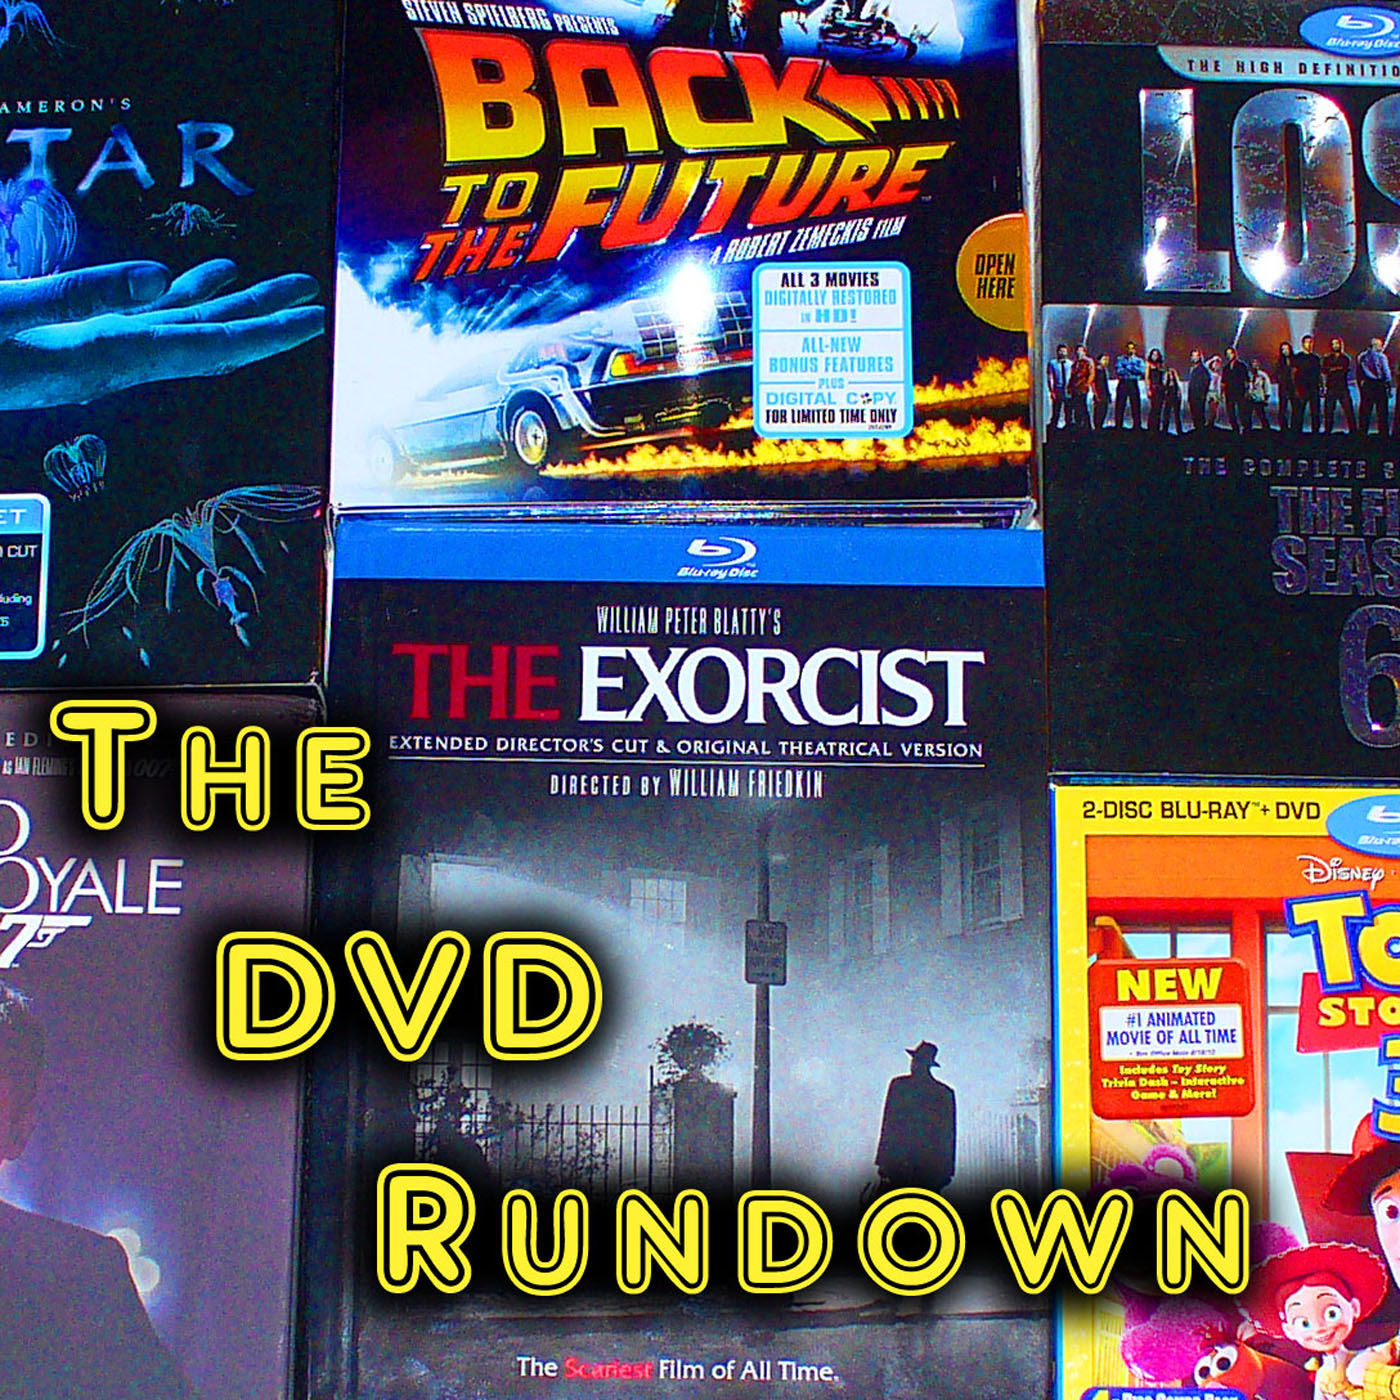 Kevin Carr's DVD Rundown